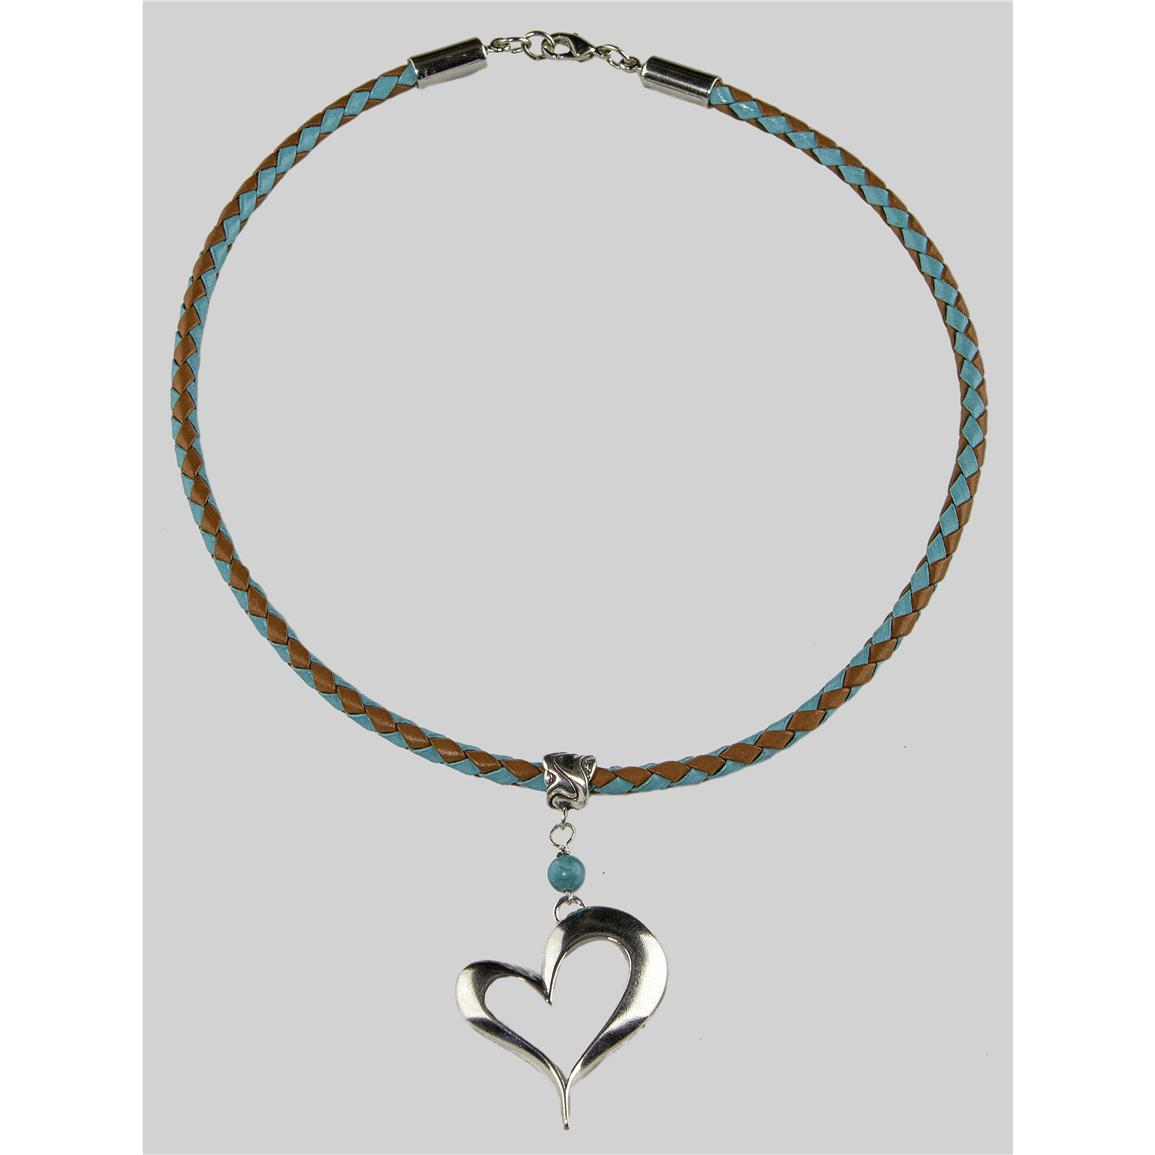 Laura Ingalls Designs™ Open Heart on Turquoise and Saddle Braided Necklace